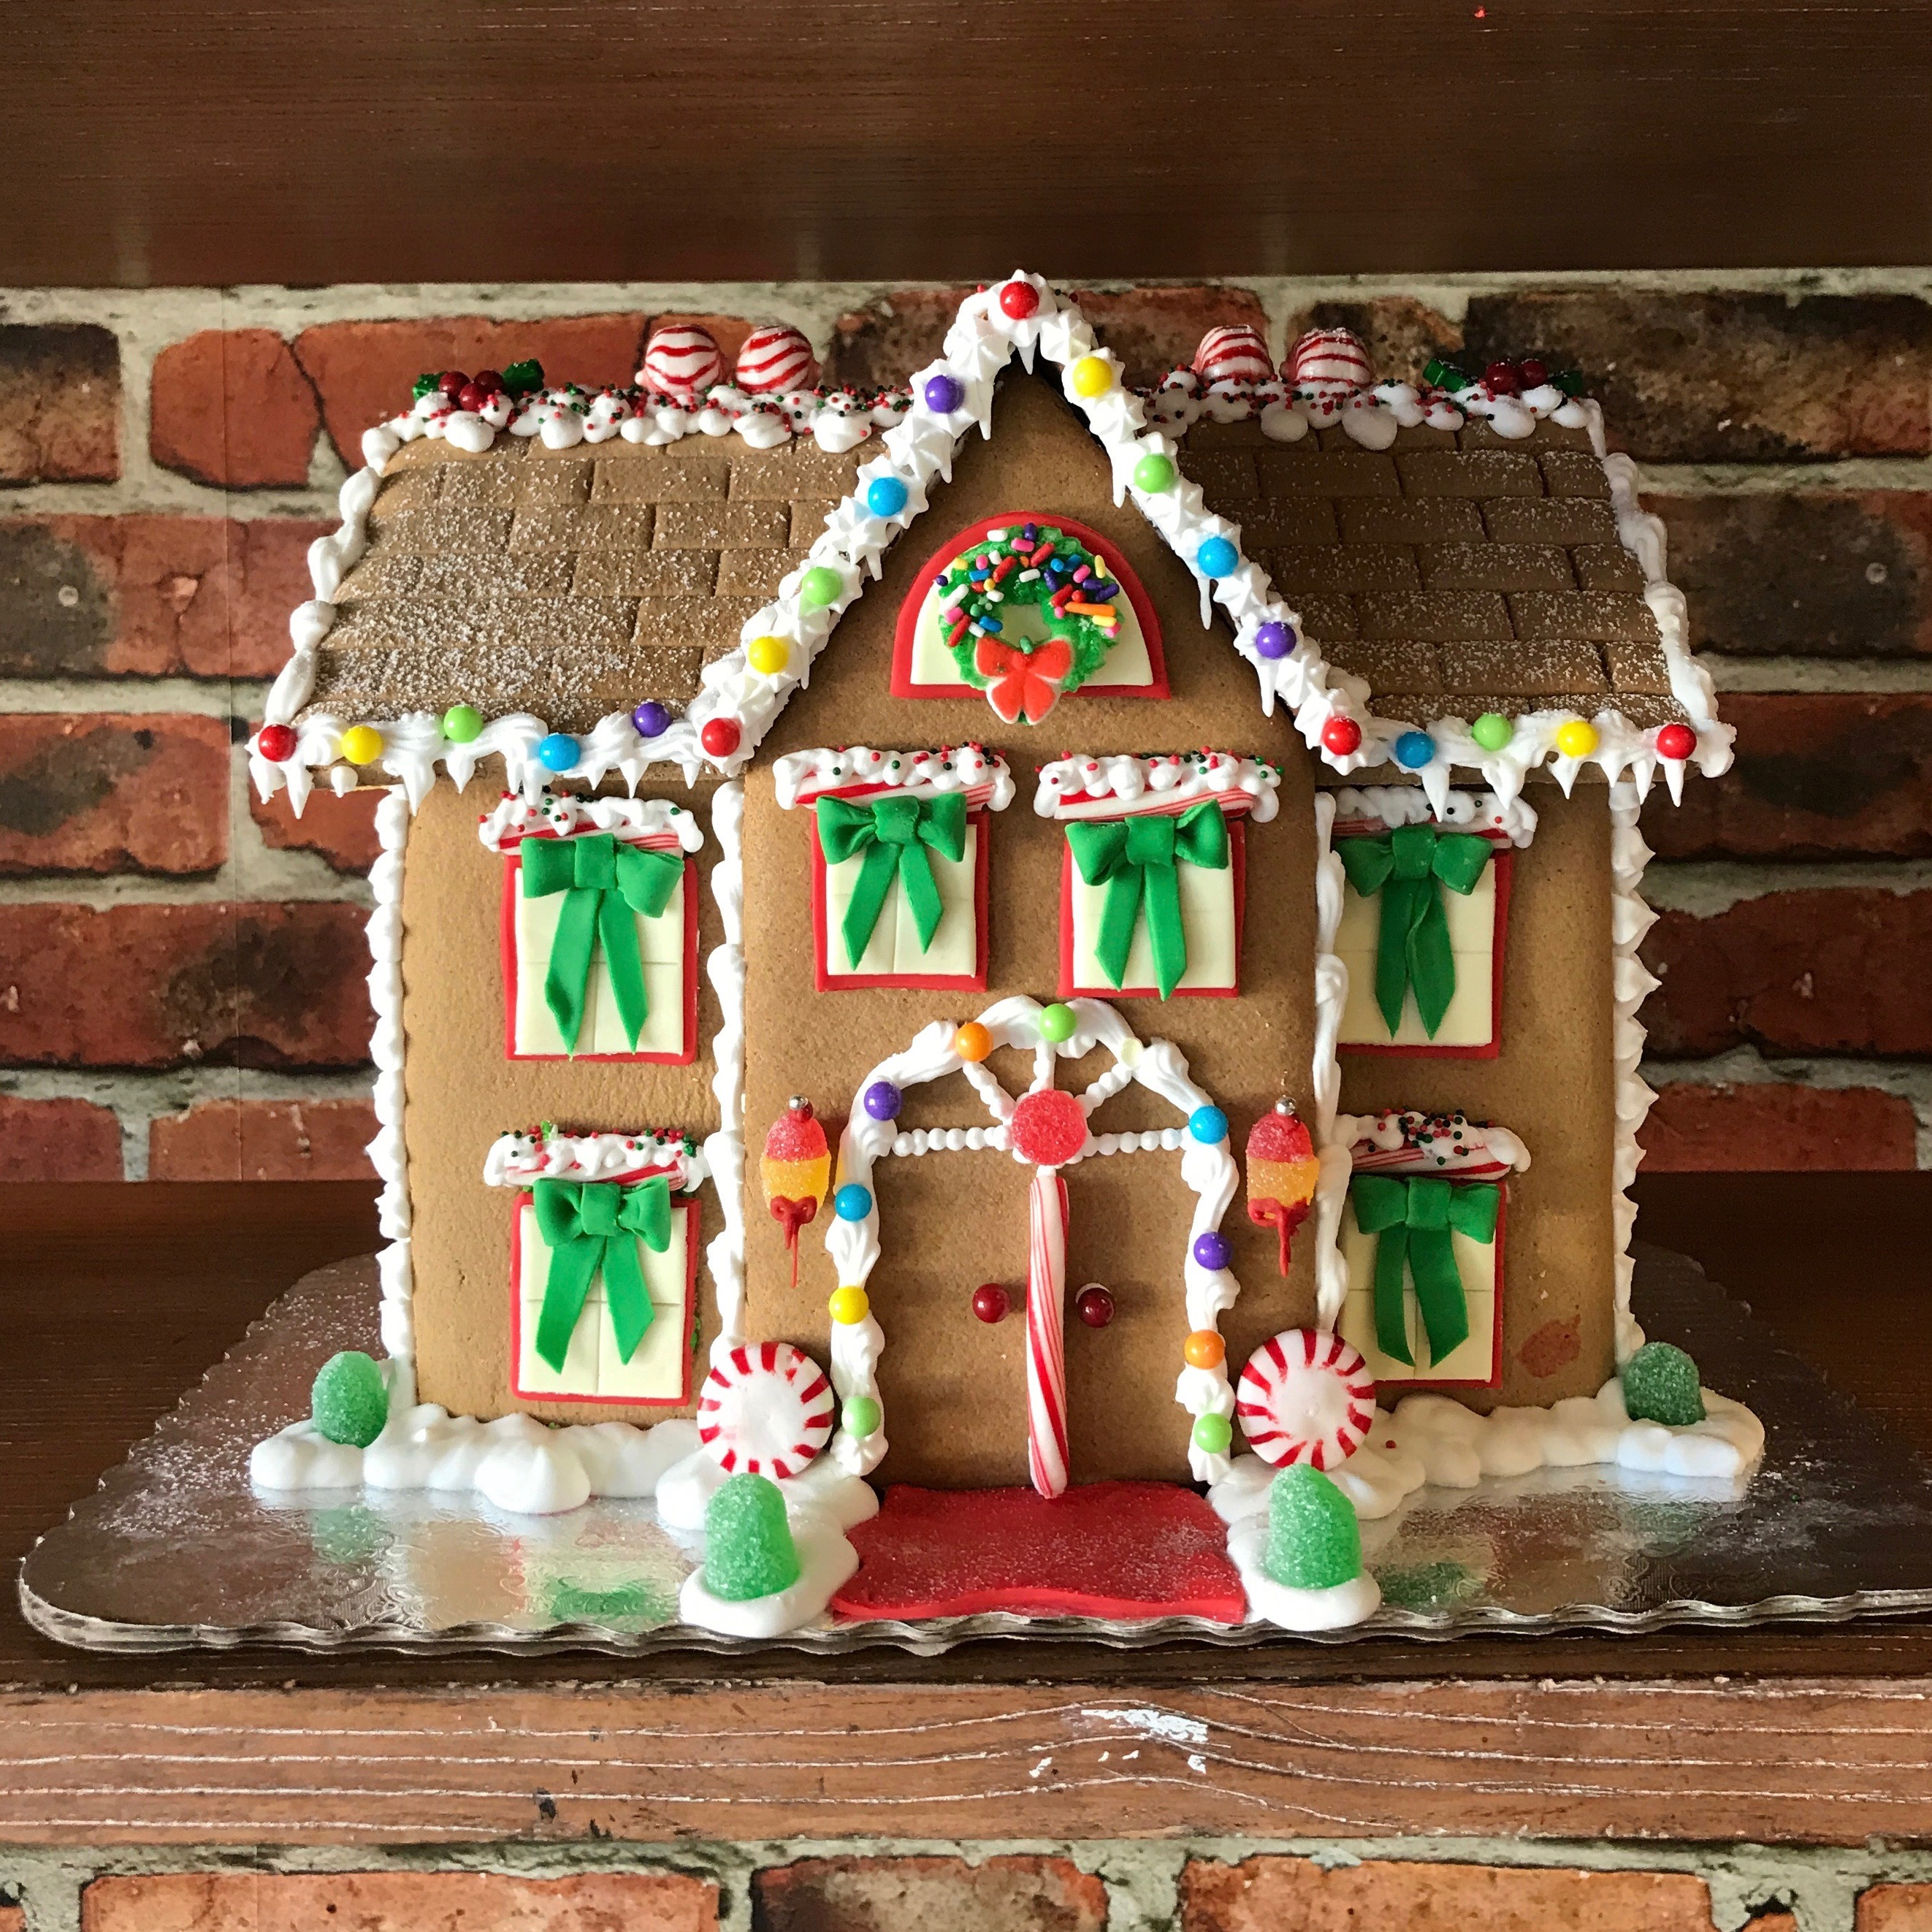 Gingerbread House Decorating with Santa